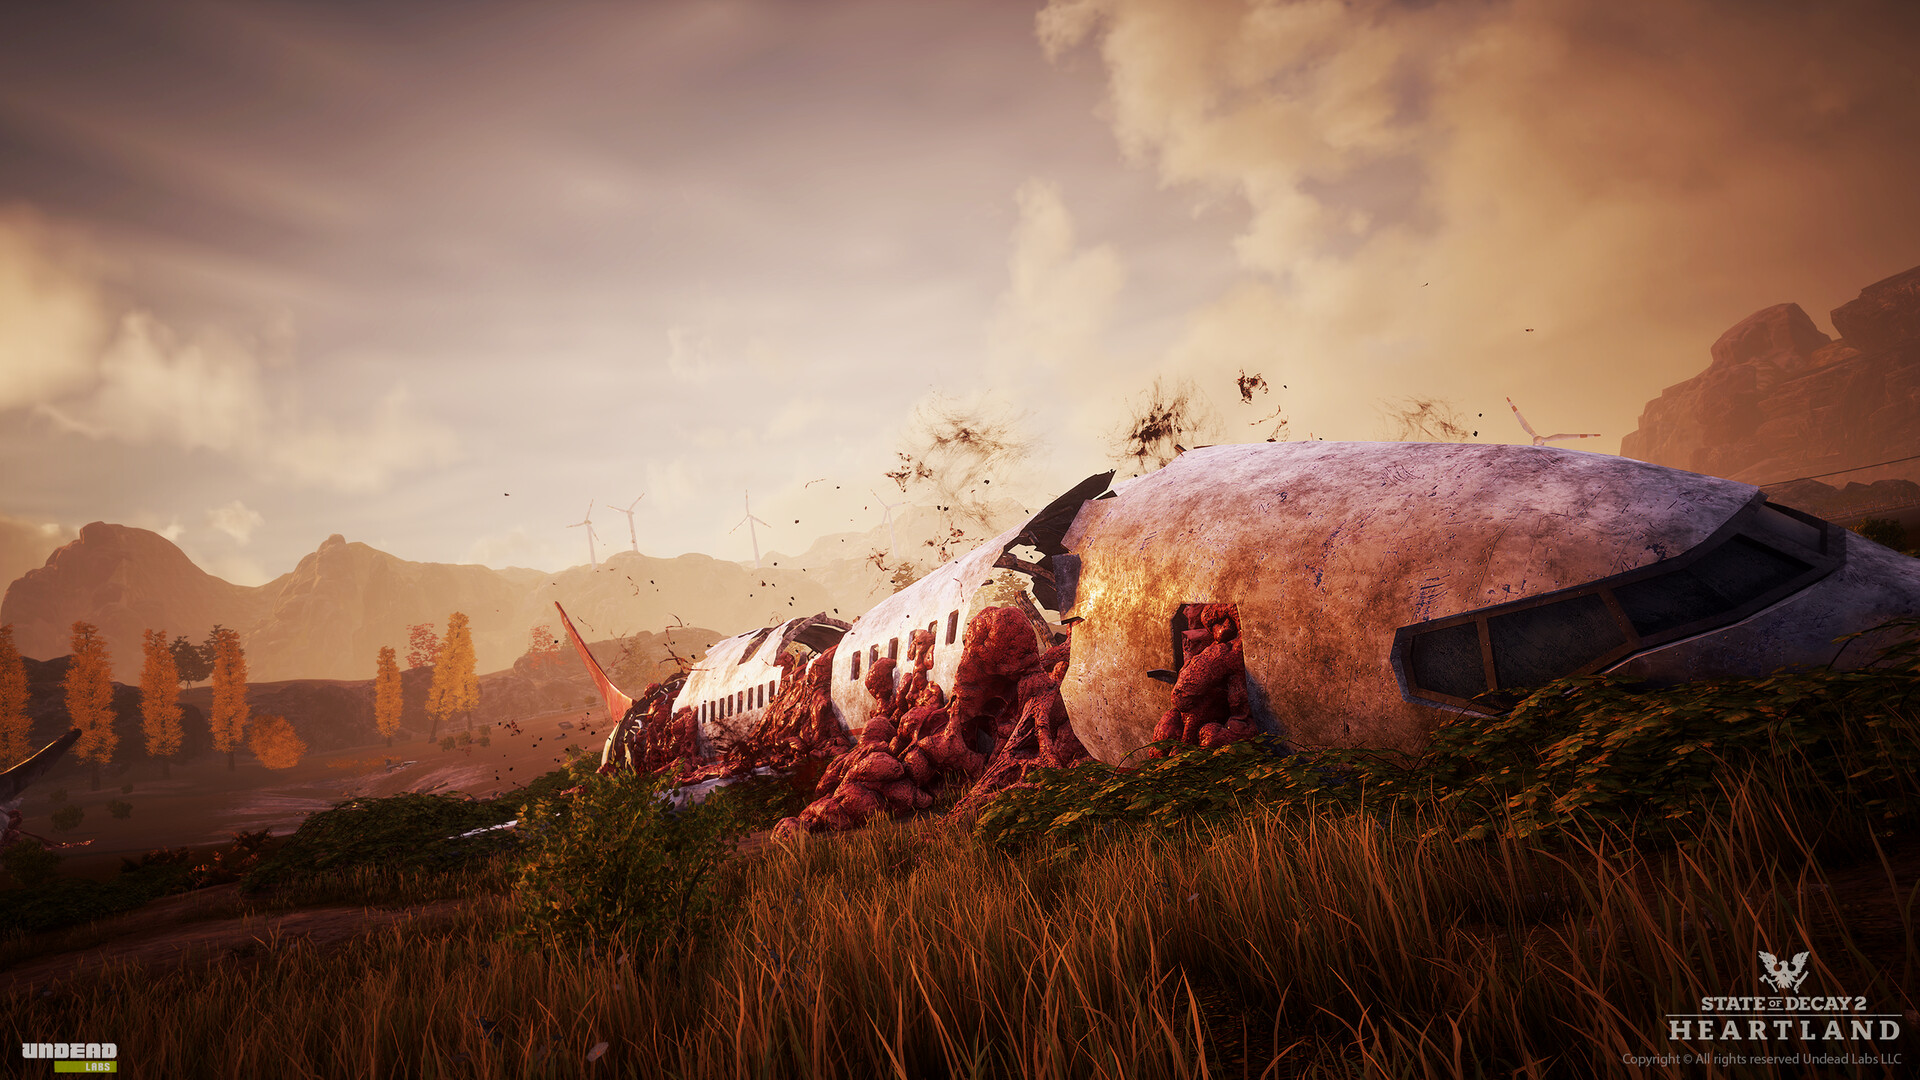 ArtStation - State Of Decay 2 - HEARTLAND, Luis Yepez